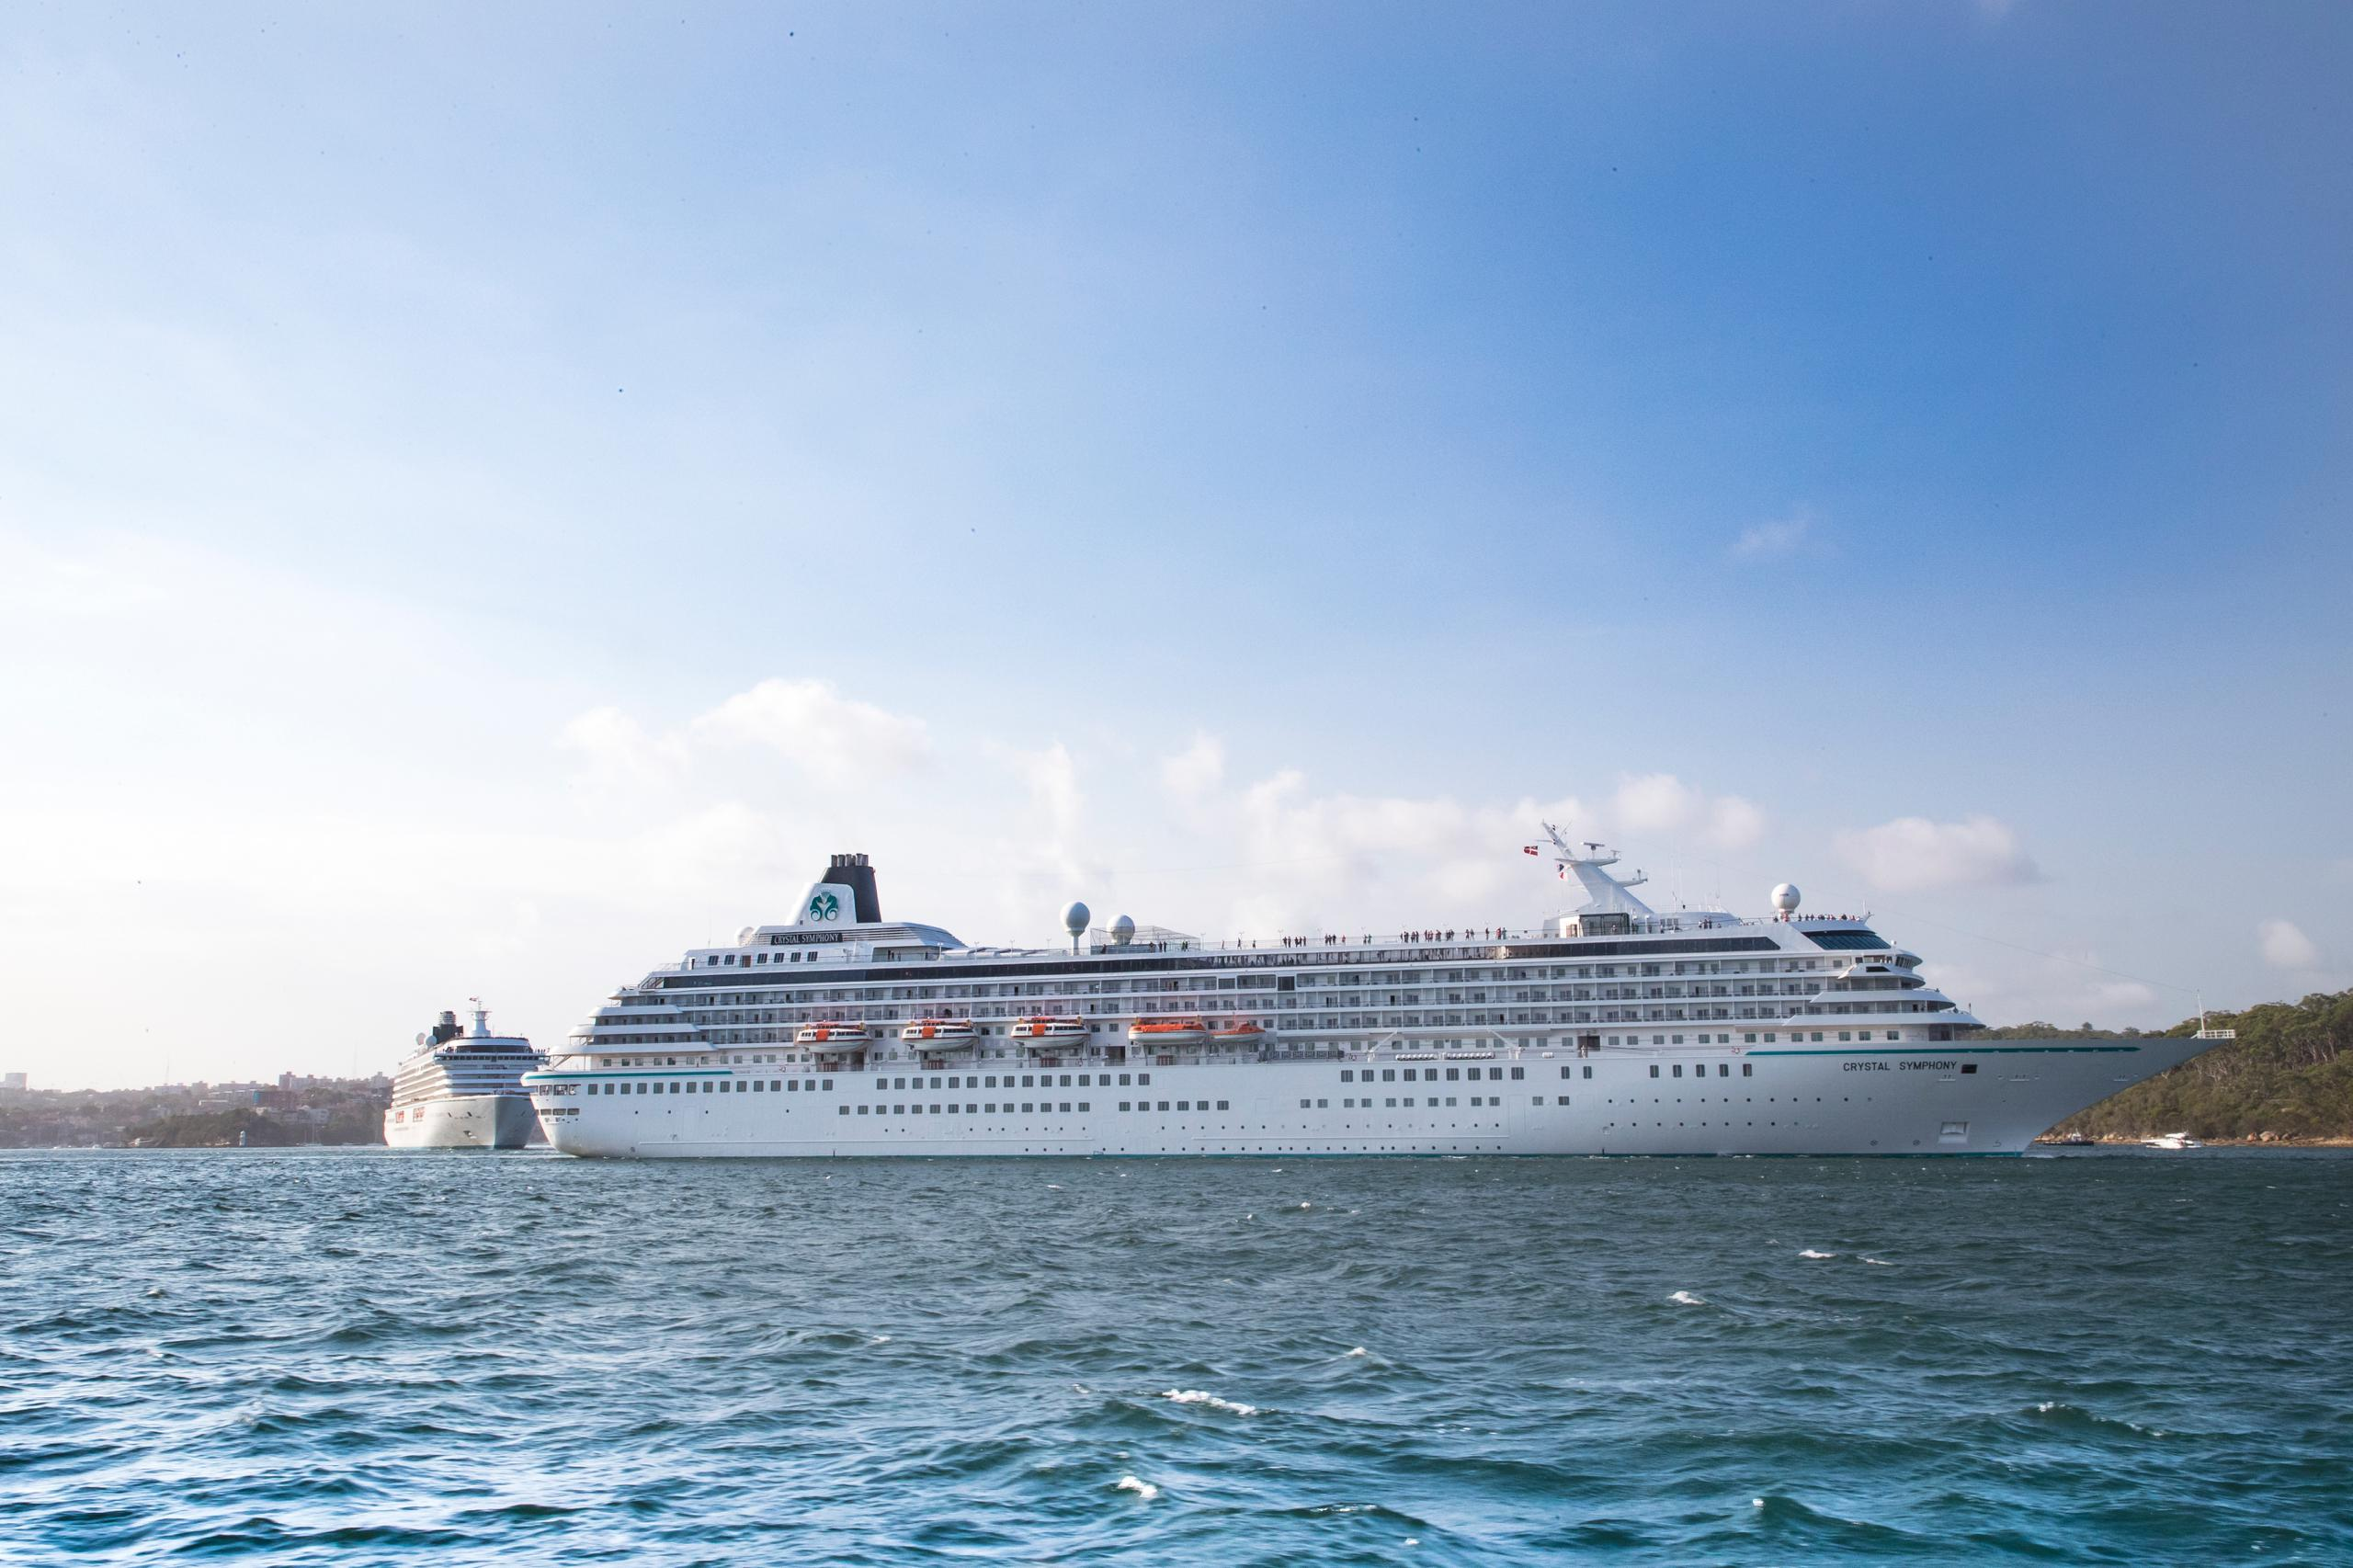 Crystal Symphony and Crystal Serenity 2021 Voyages Announced